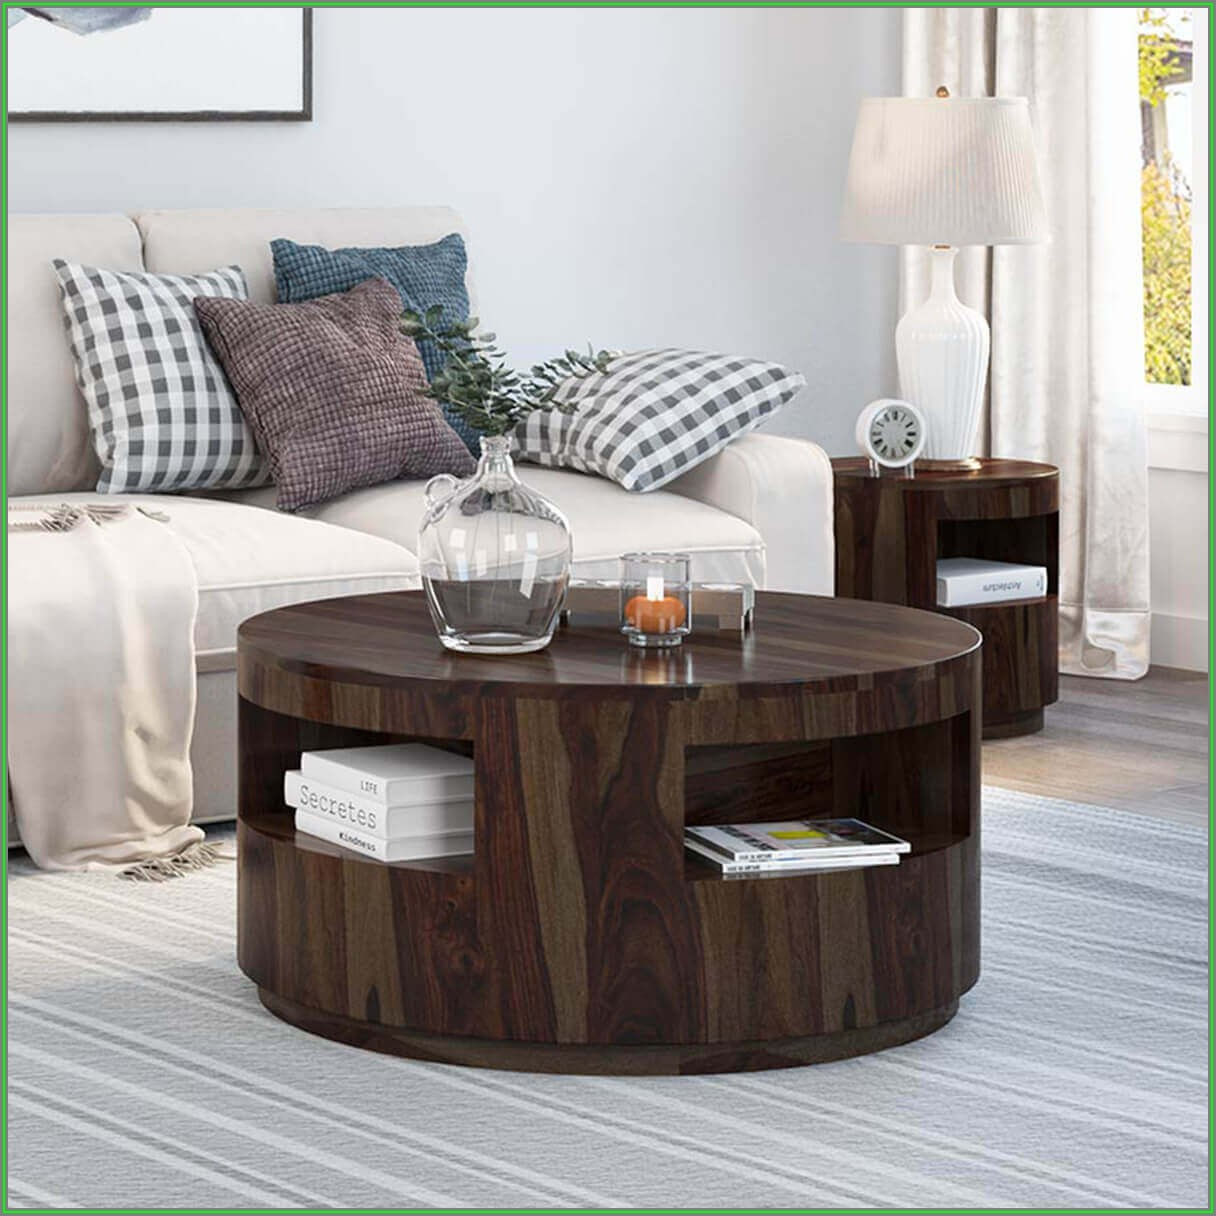 Rustic Round Coffee Table Wood